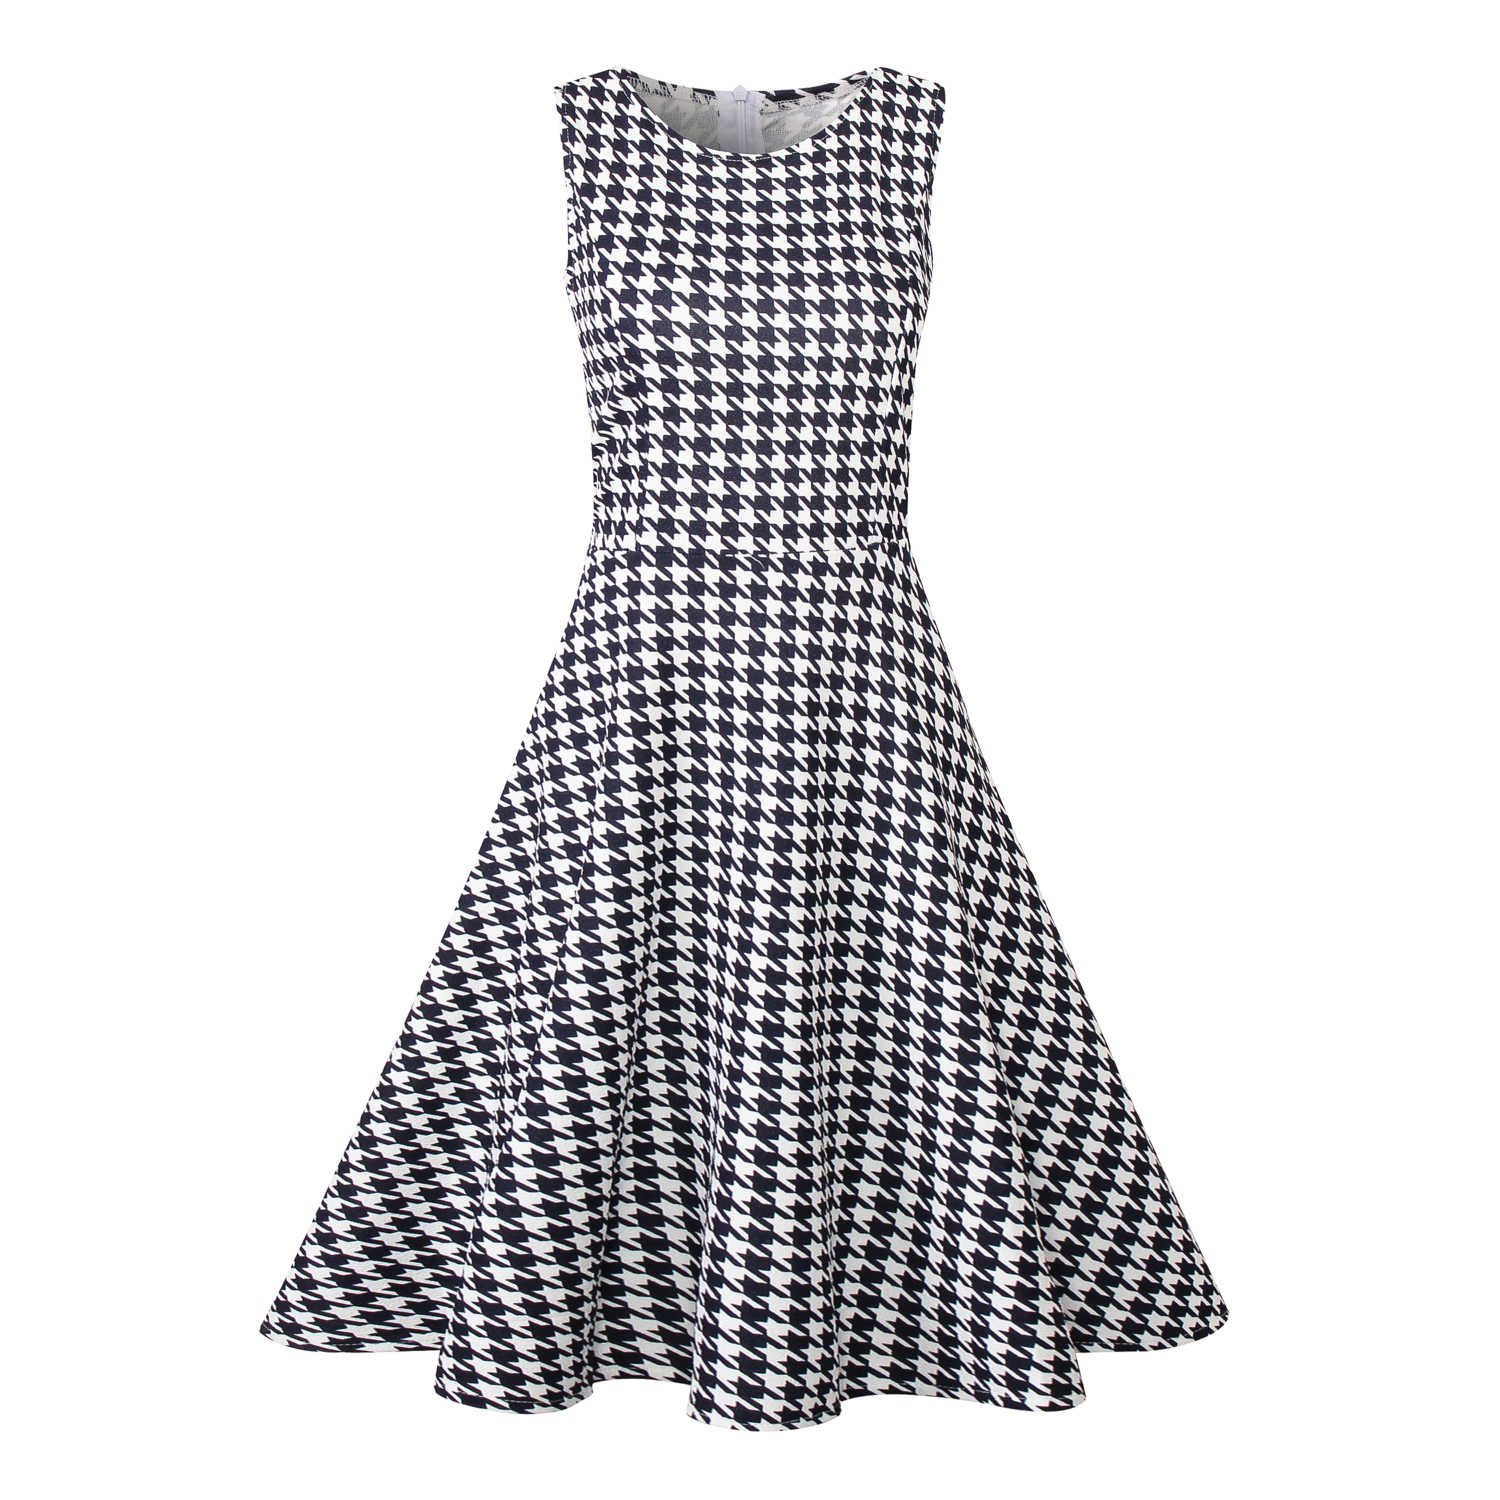 9c23e16be1d Hepburn Style Floral Houndstooth Printing Vintage Summer Dress New Women  Sleeveless Large Swing Sexy Party Dress